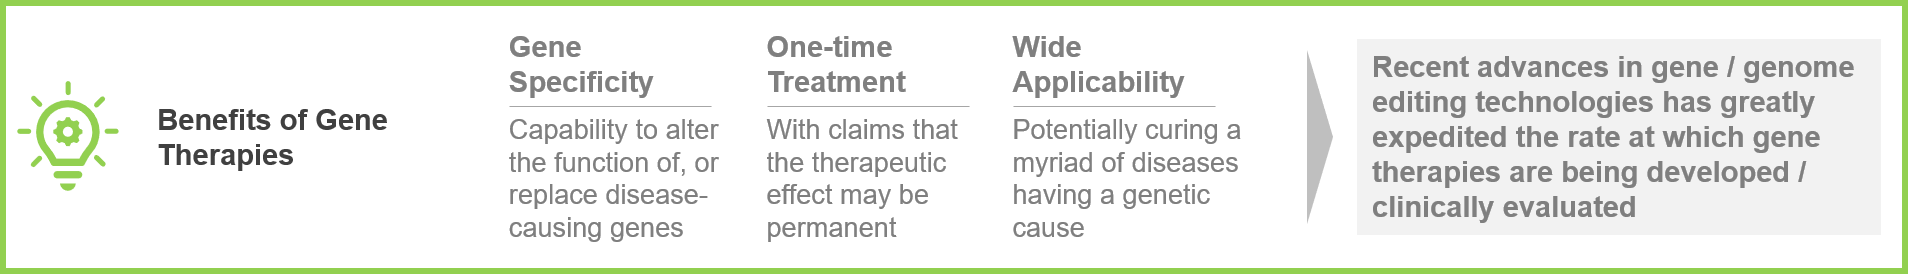 Infographic: Benefits of Gene Therapy